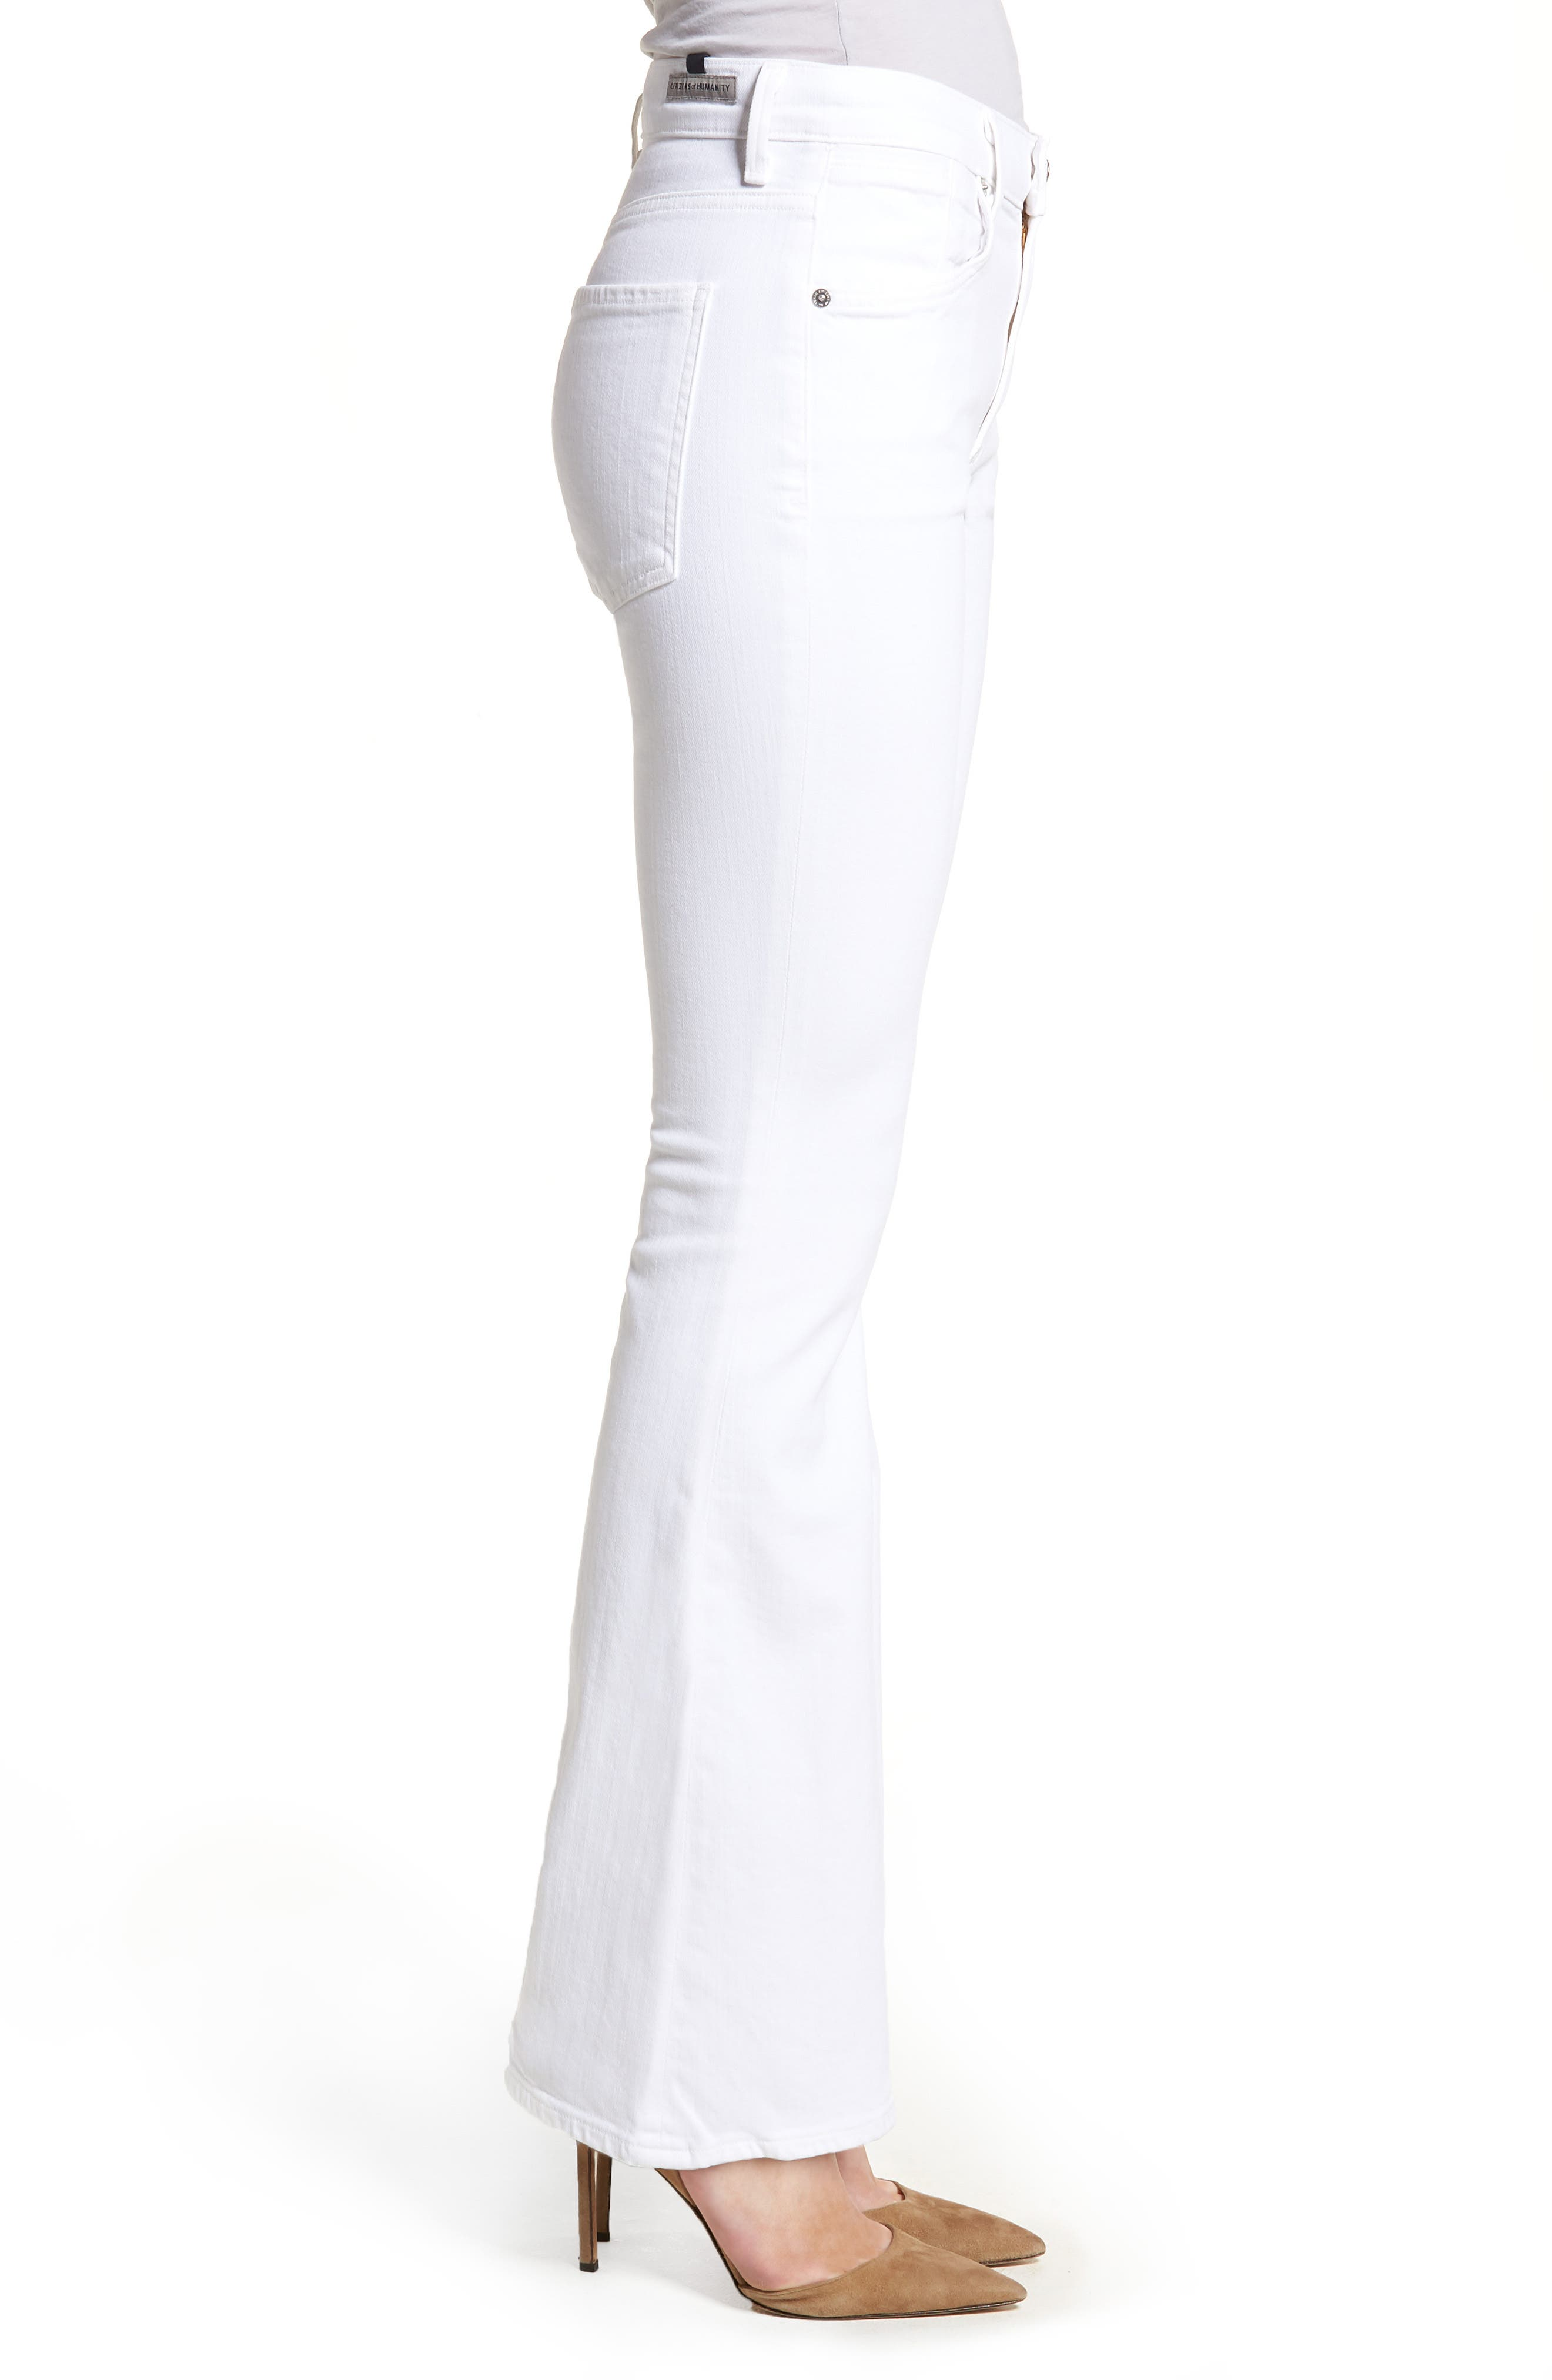 Fleetwood Flare Jeans,                             Alternate thumbnail 3, color,                             Optic White